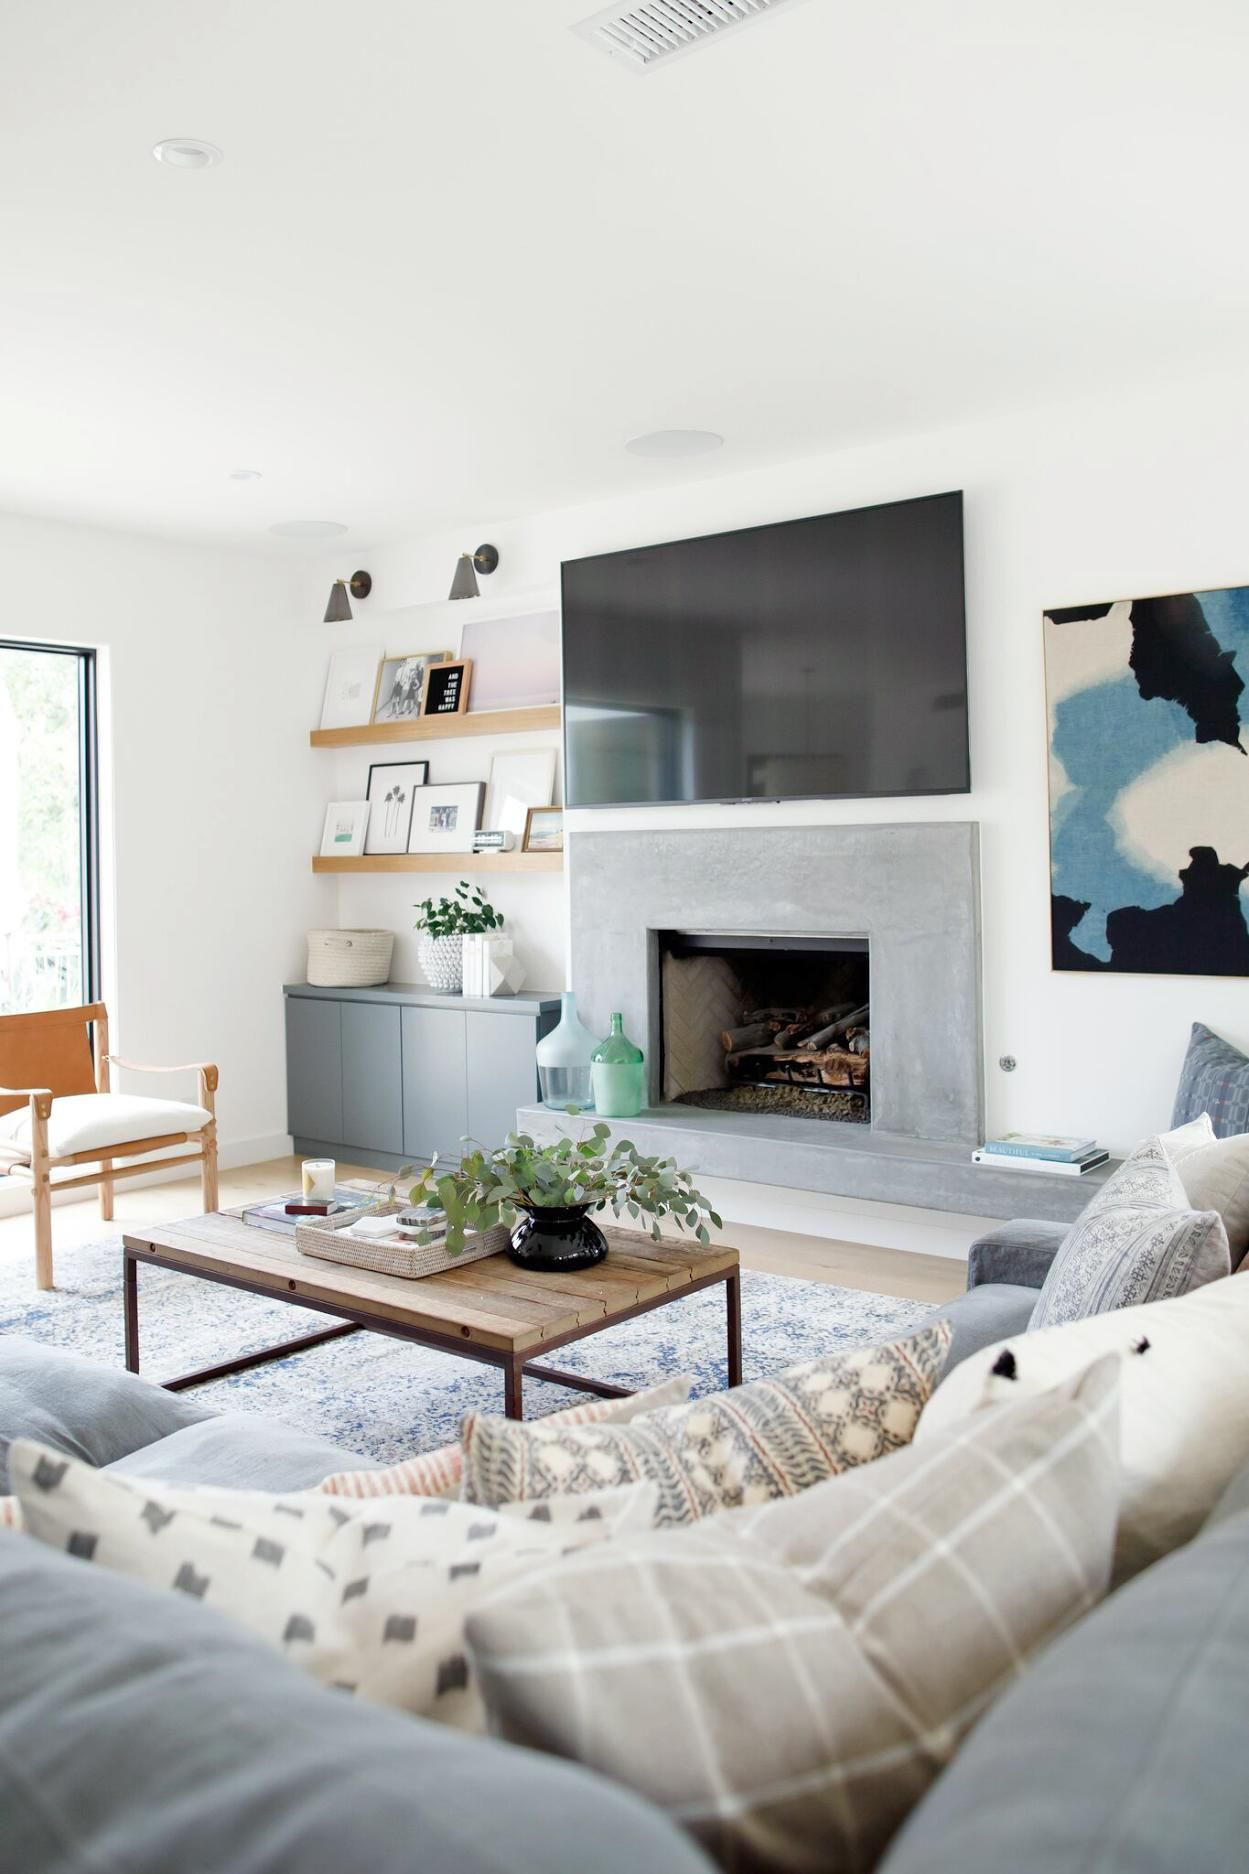 Rangeview Reno Pt.2: Living Room | Coastal living rooms, Studio ...